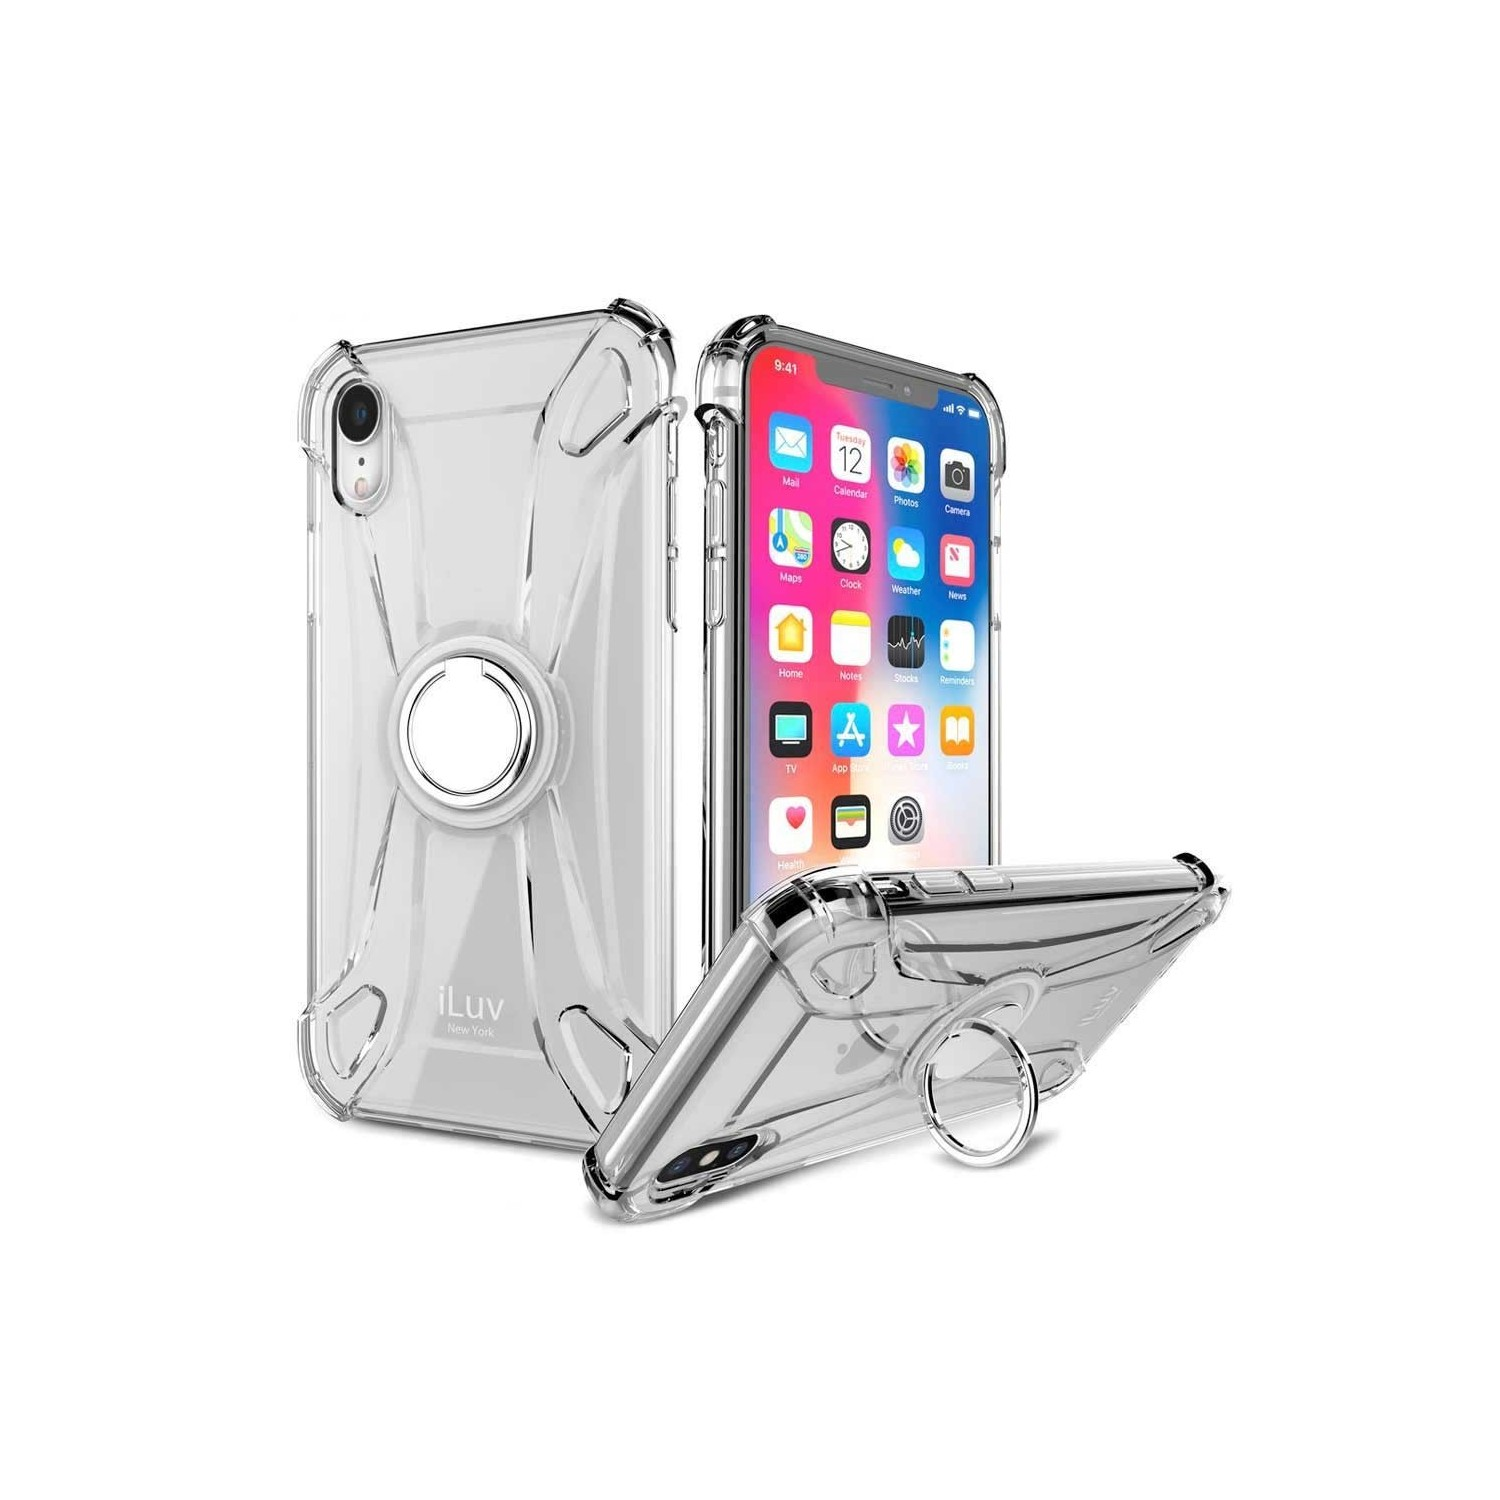 Case - iLuv Crystal Ring for iPhone XR - Clear